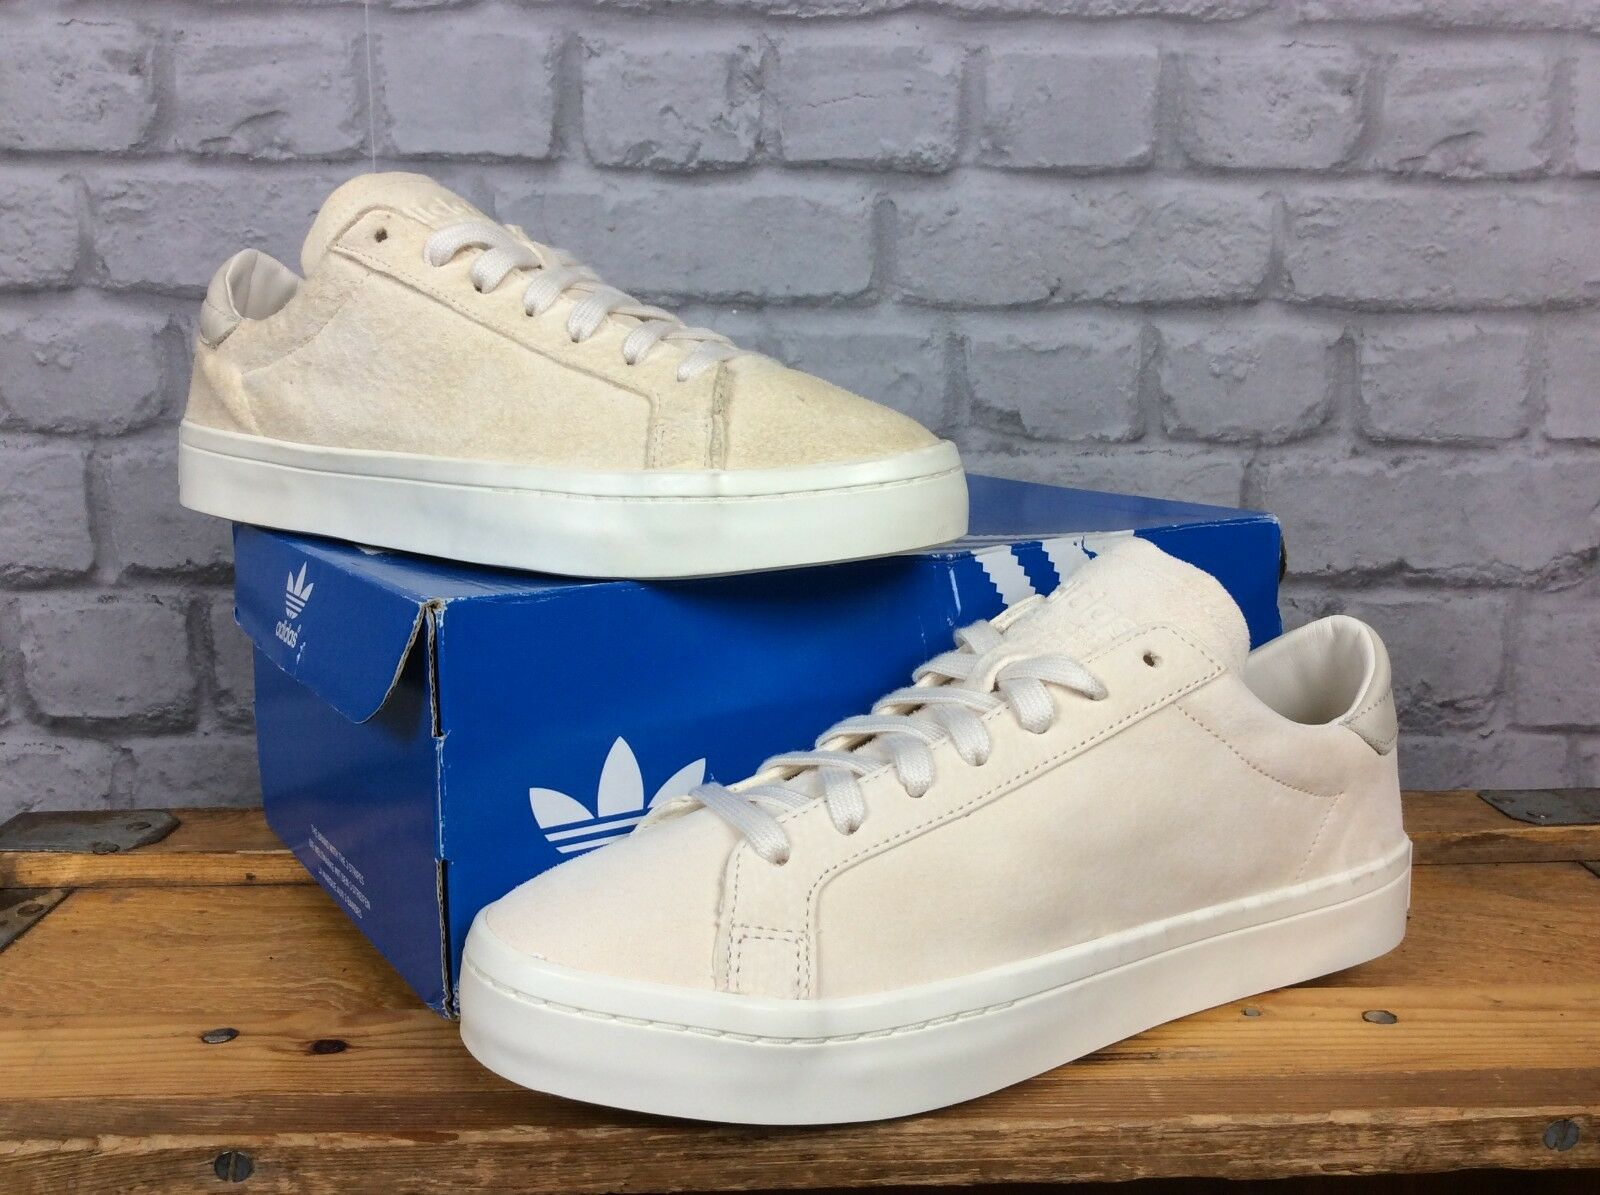 ADIDAS ORIGINALS MENS UK 8 EU 42 COURT VANTAGE CREAM SUEDE TRAINERS